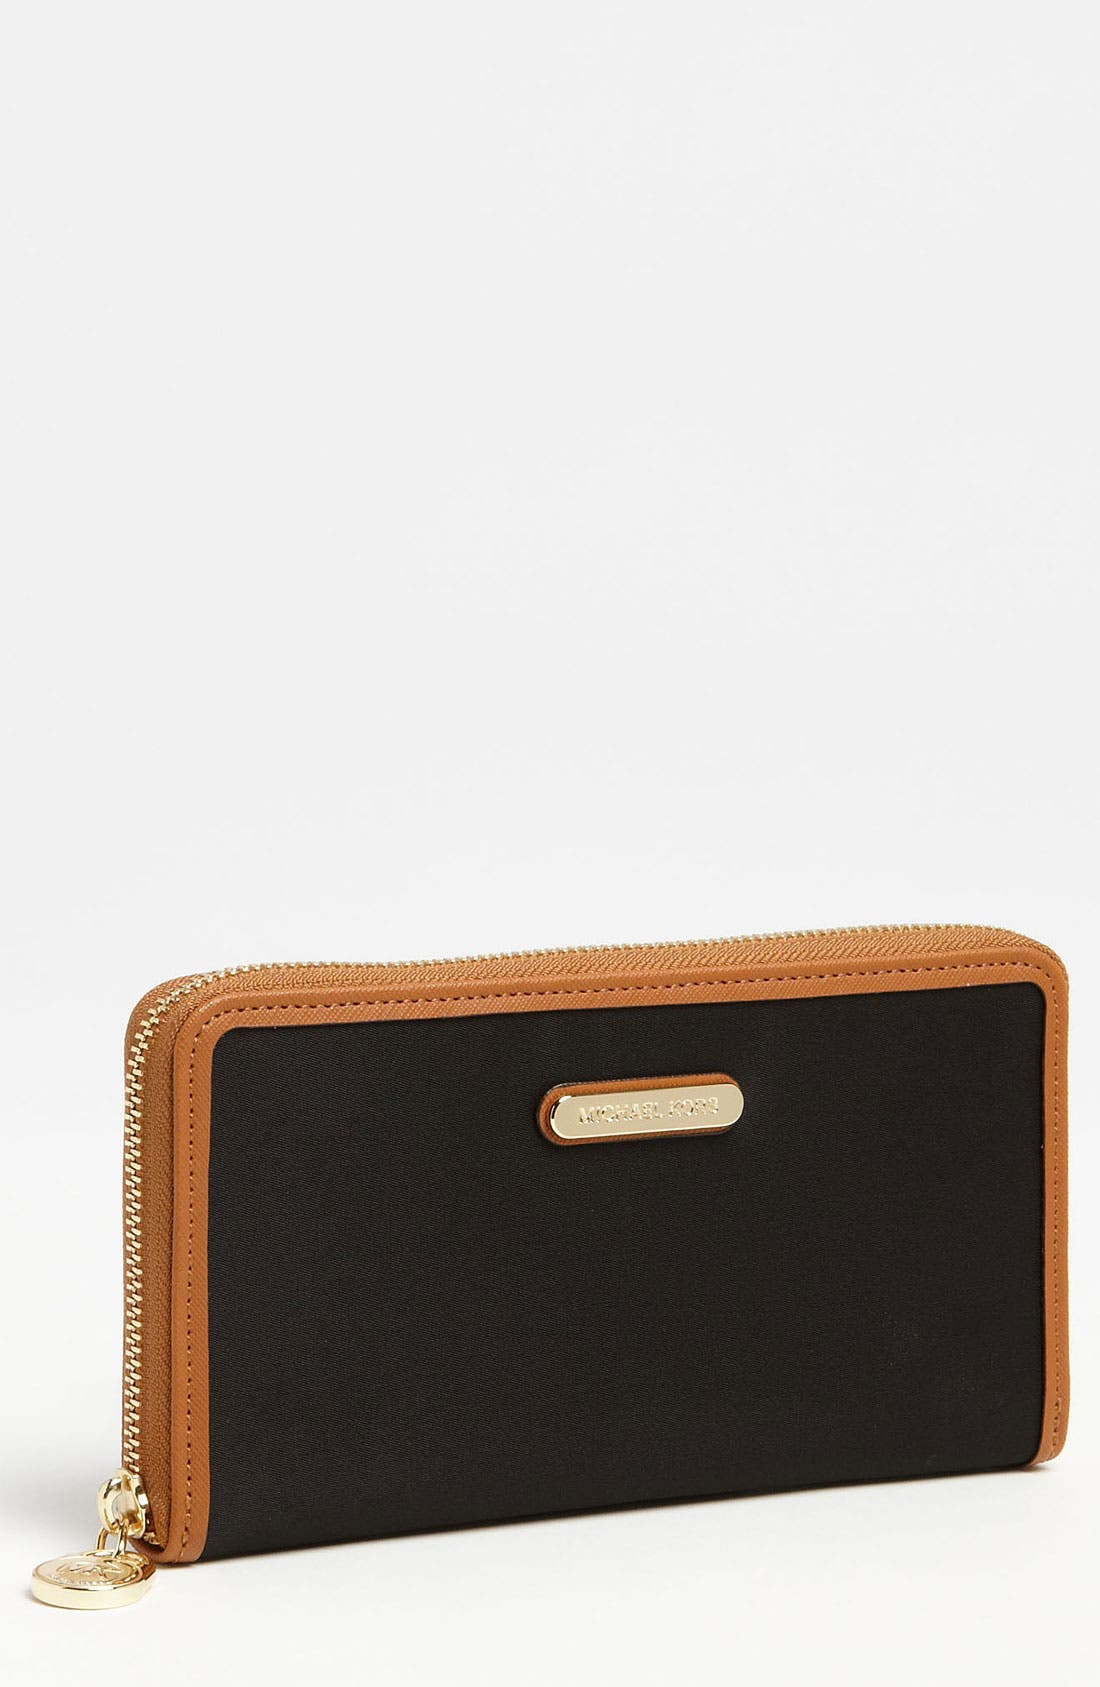 Alternate Image 1 Selected - MICHAEL Michael Kors 'Kempton' Zip Around Continental Wallet